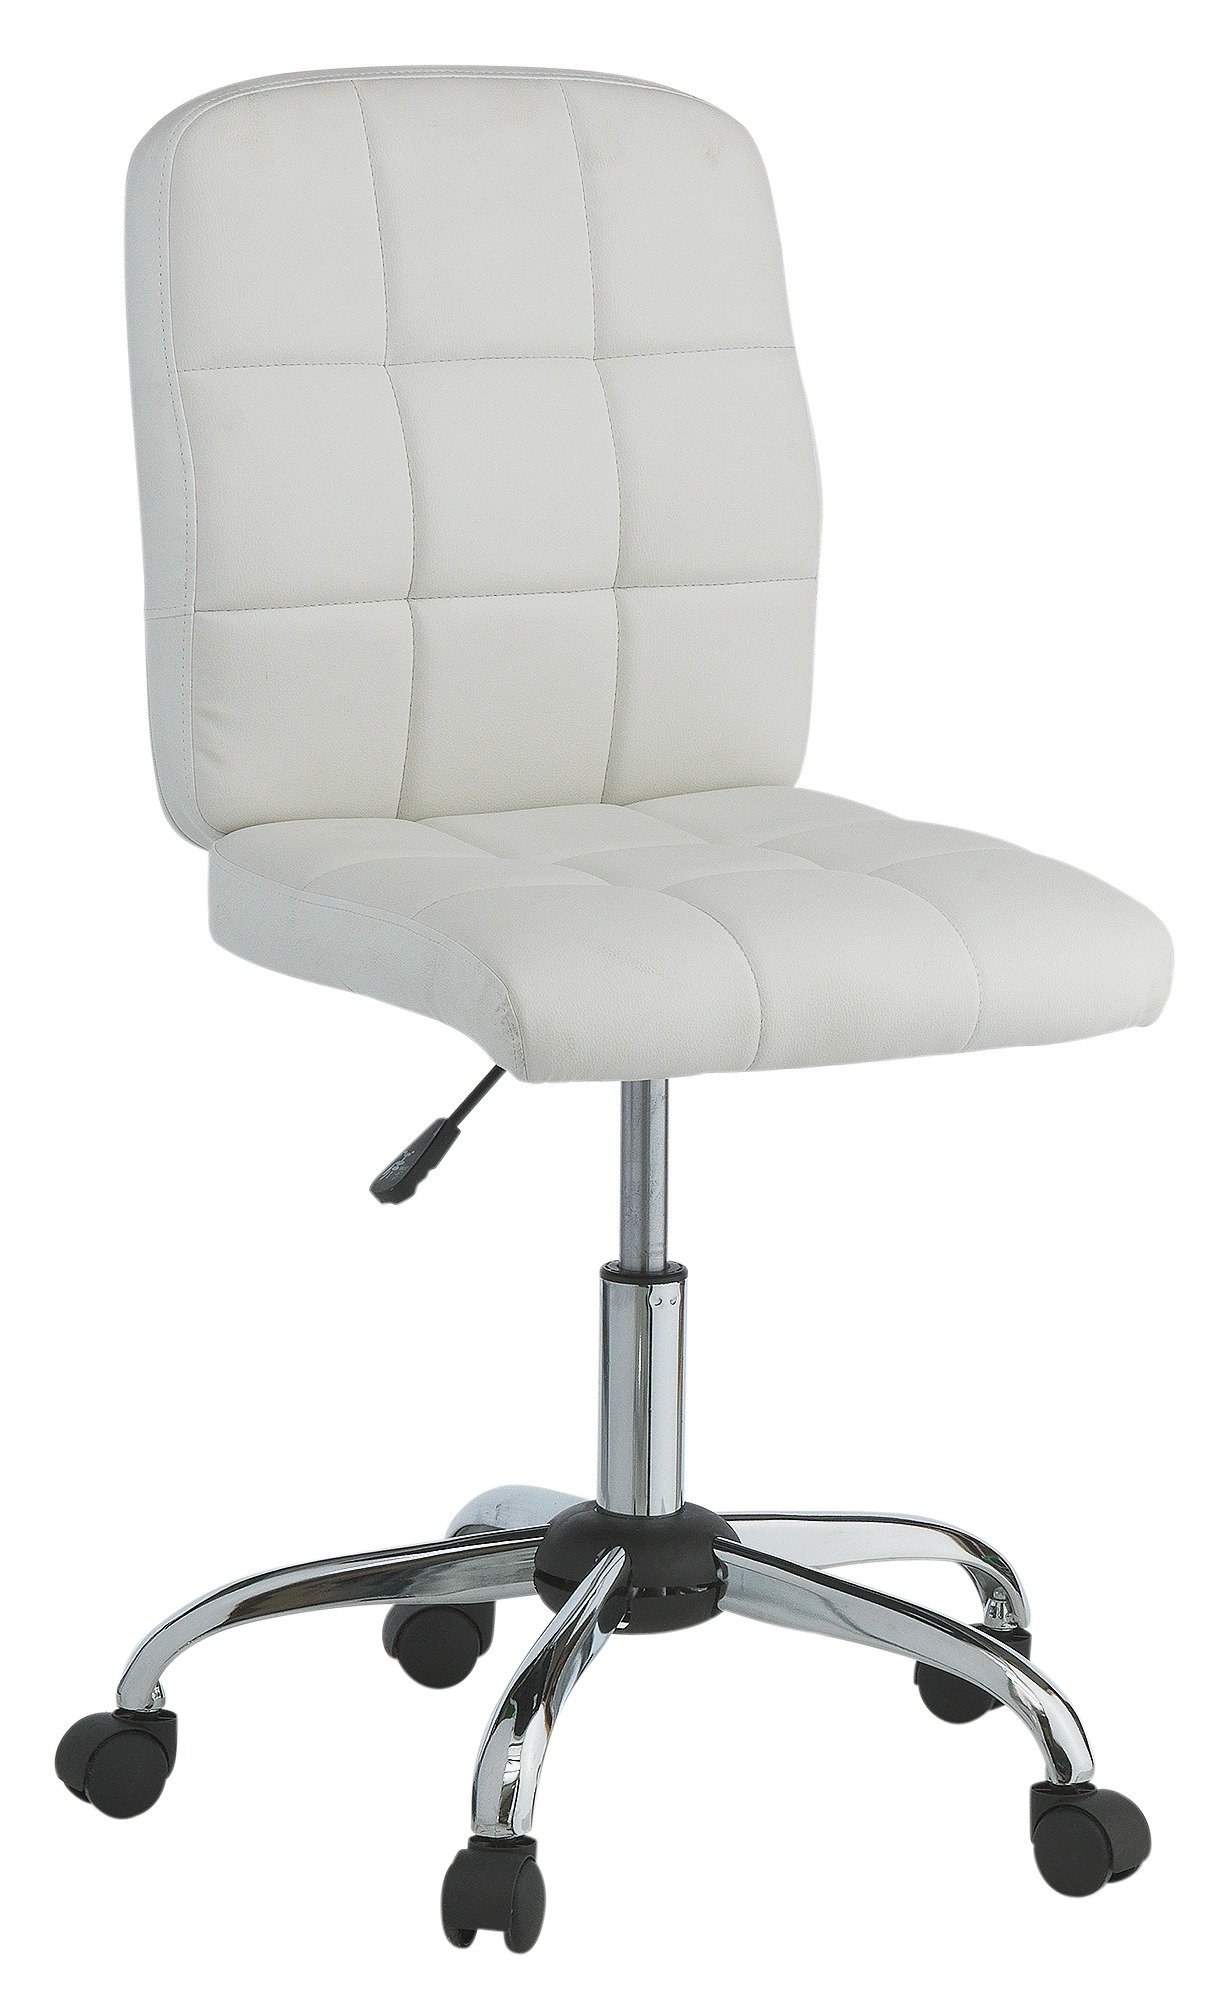 Baby Chairs Argos Argos Home Jarvis Gas Lift Office Chair White 4596981